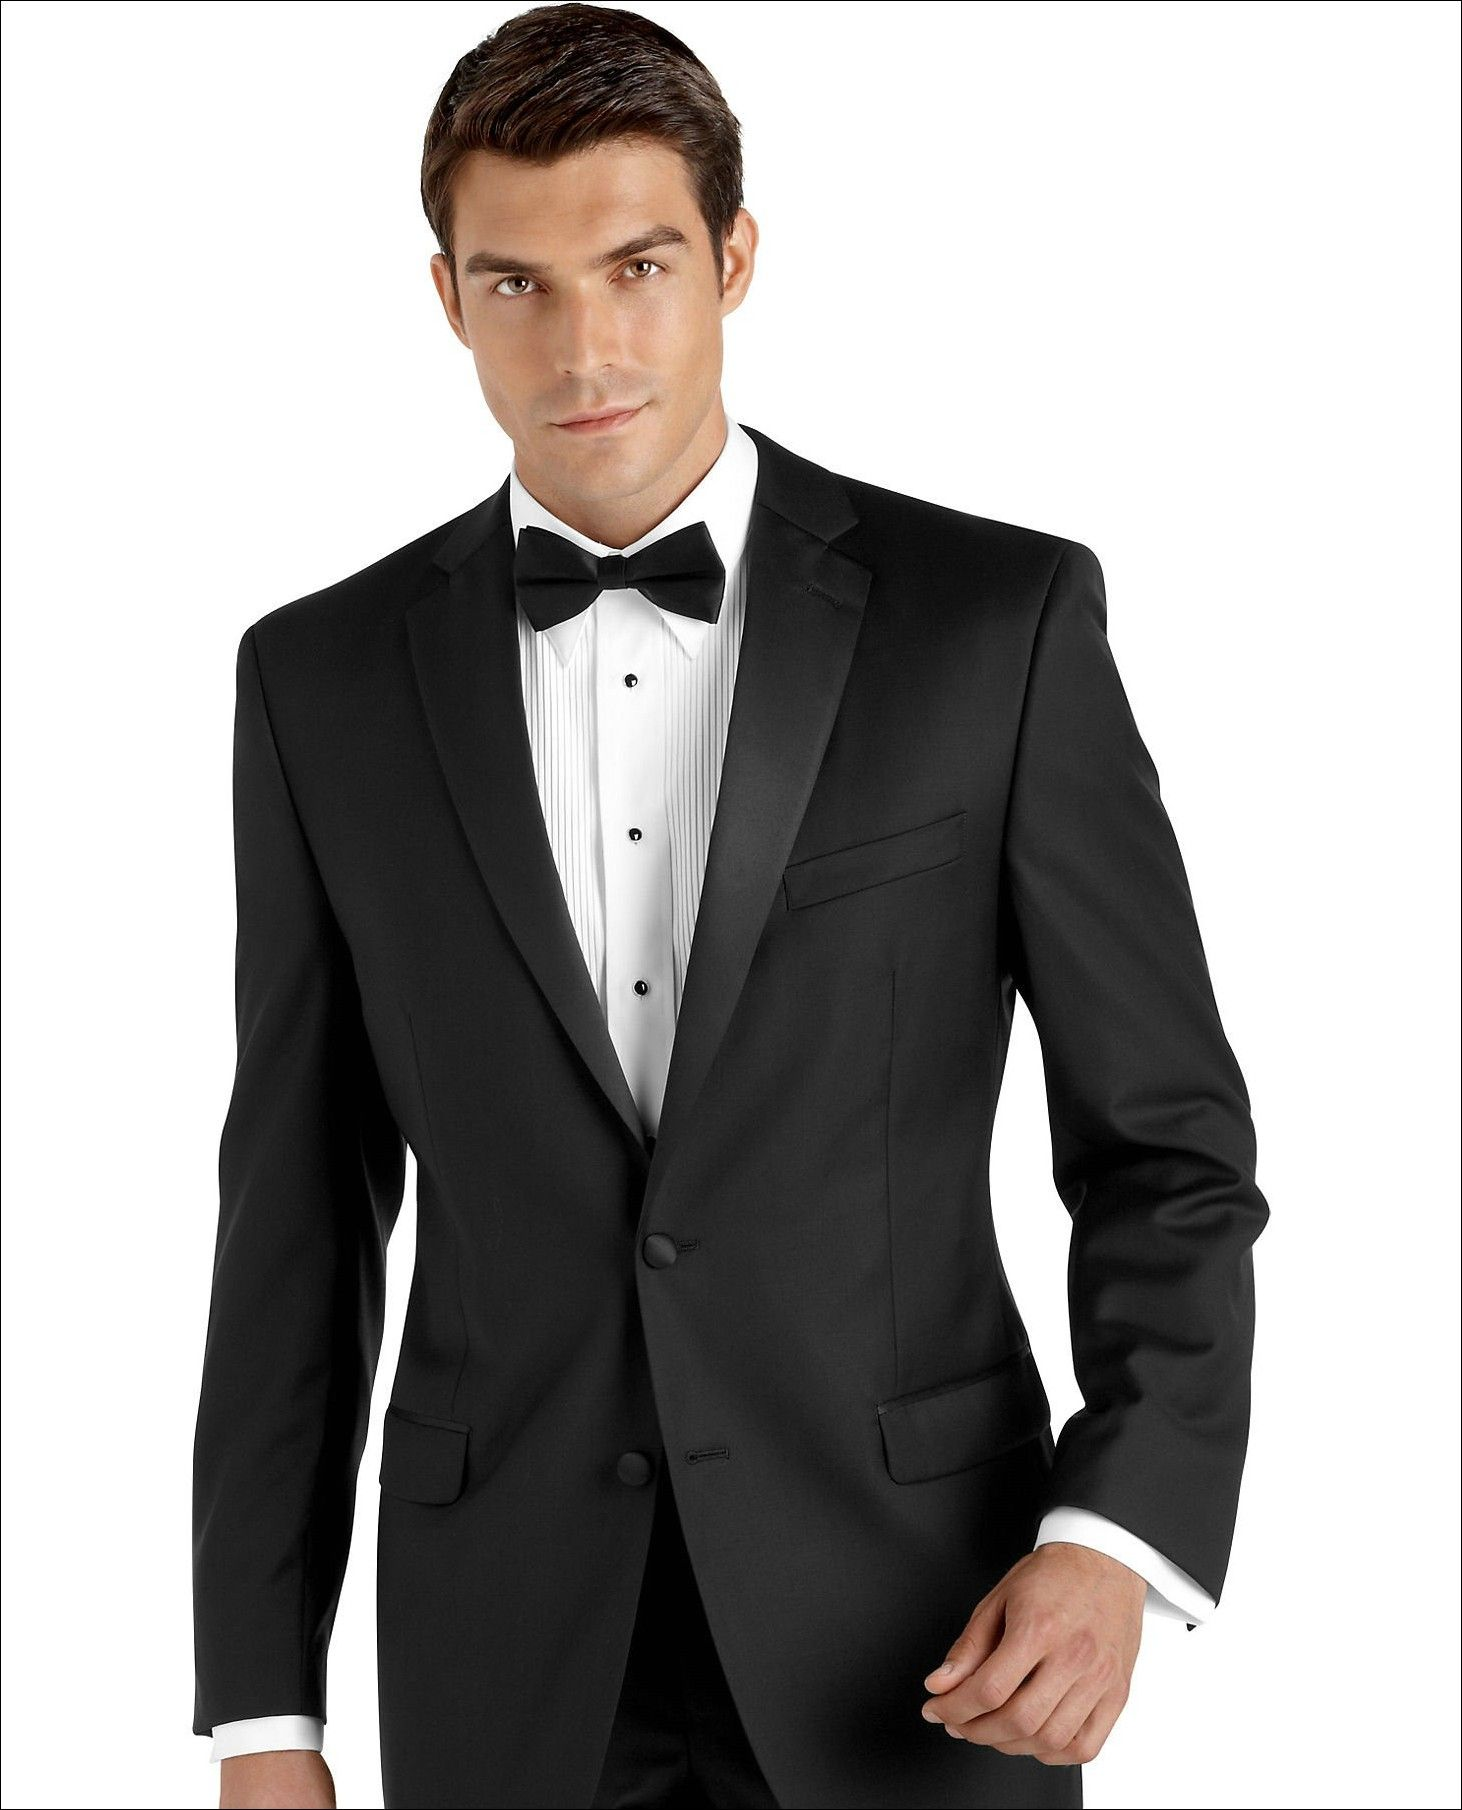 Black Suits For Men with Black Bow Tie | formatura | Pinterest ...